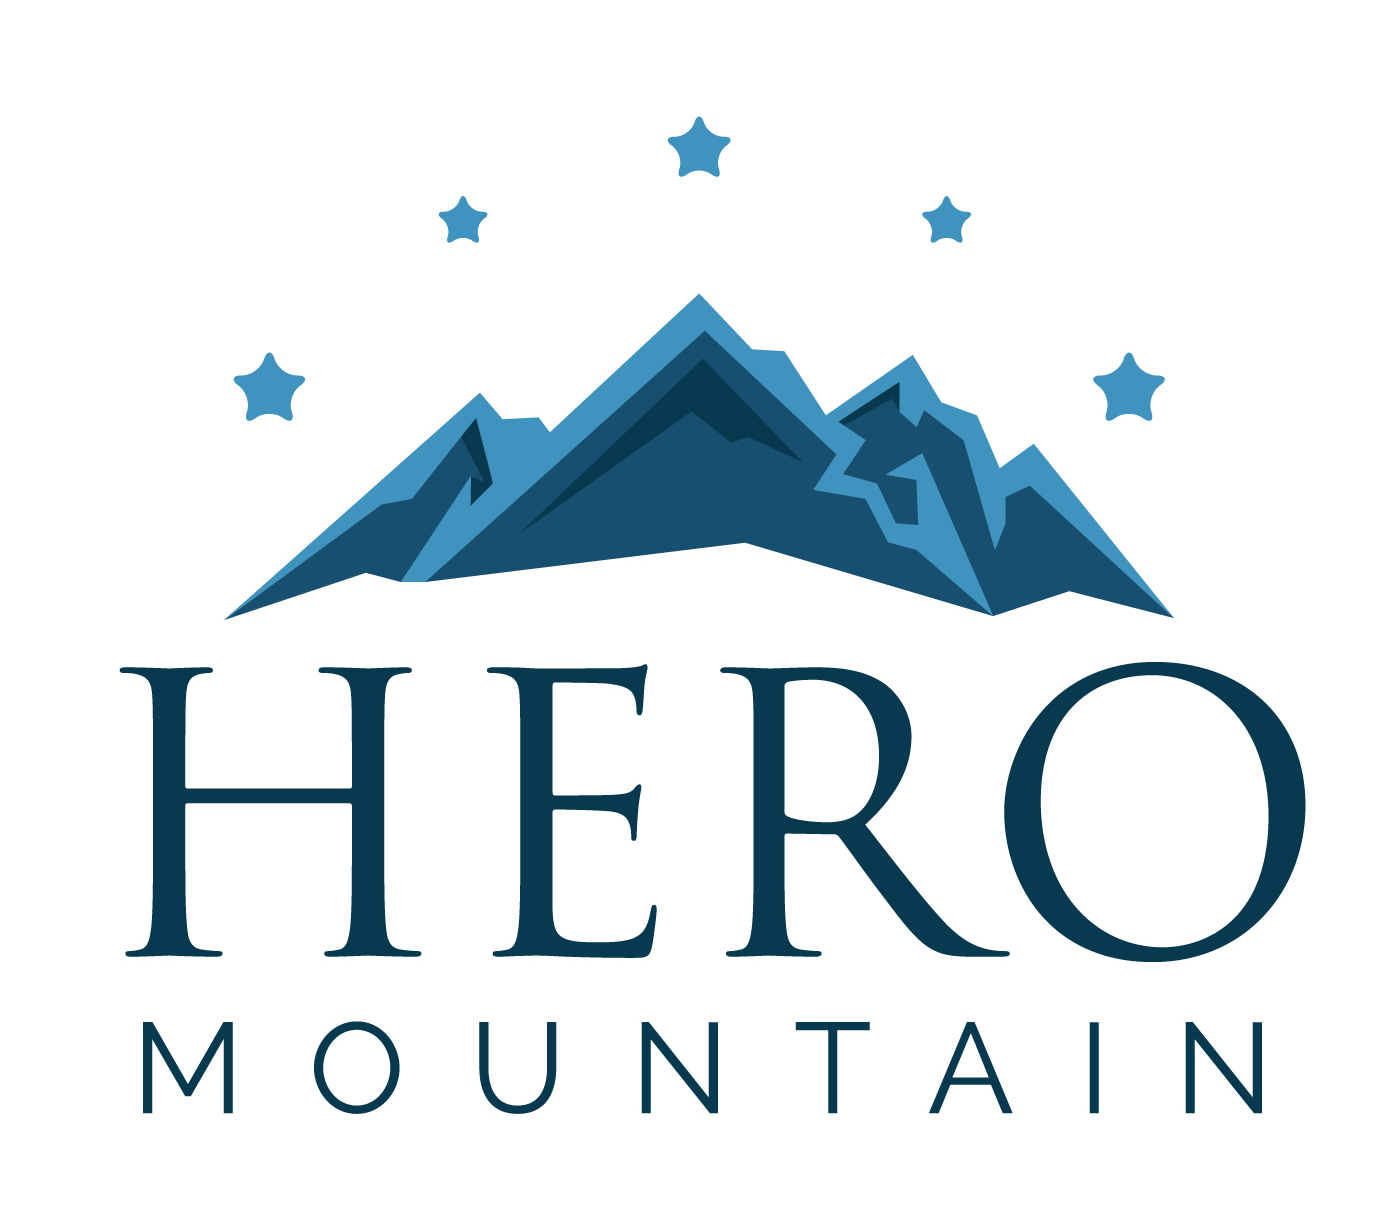 Hero Mountain